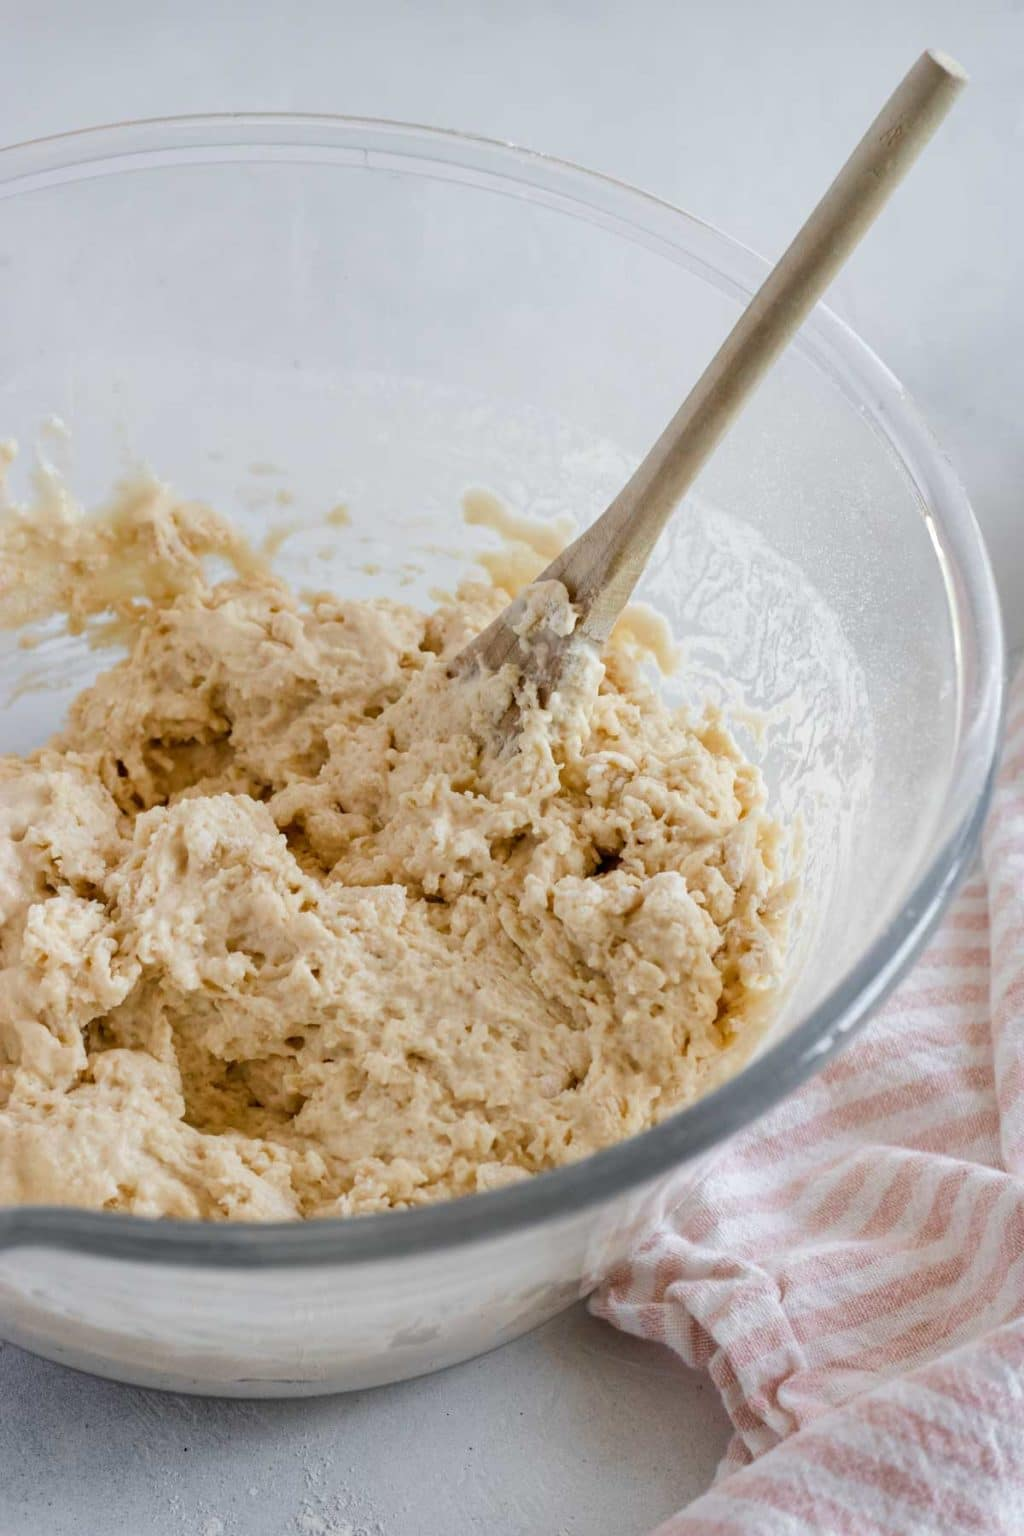 beer bread dough in a mixing bowl